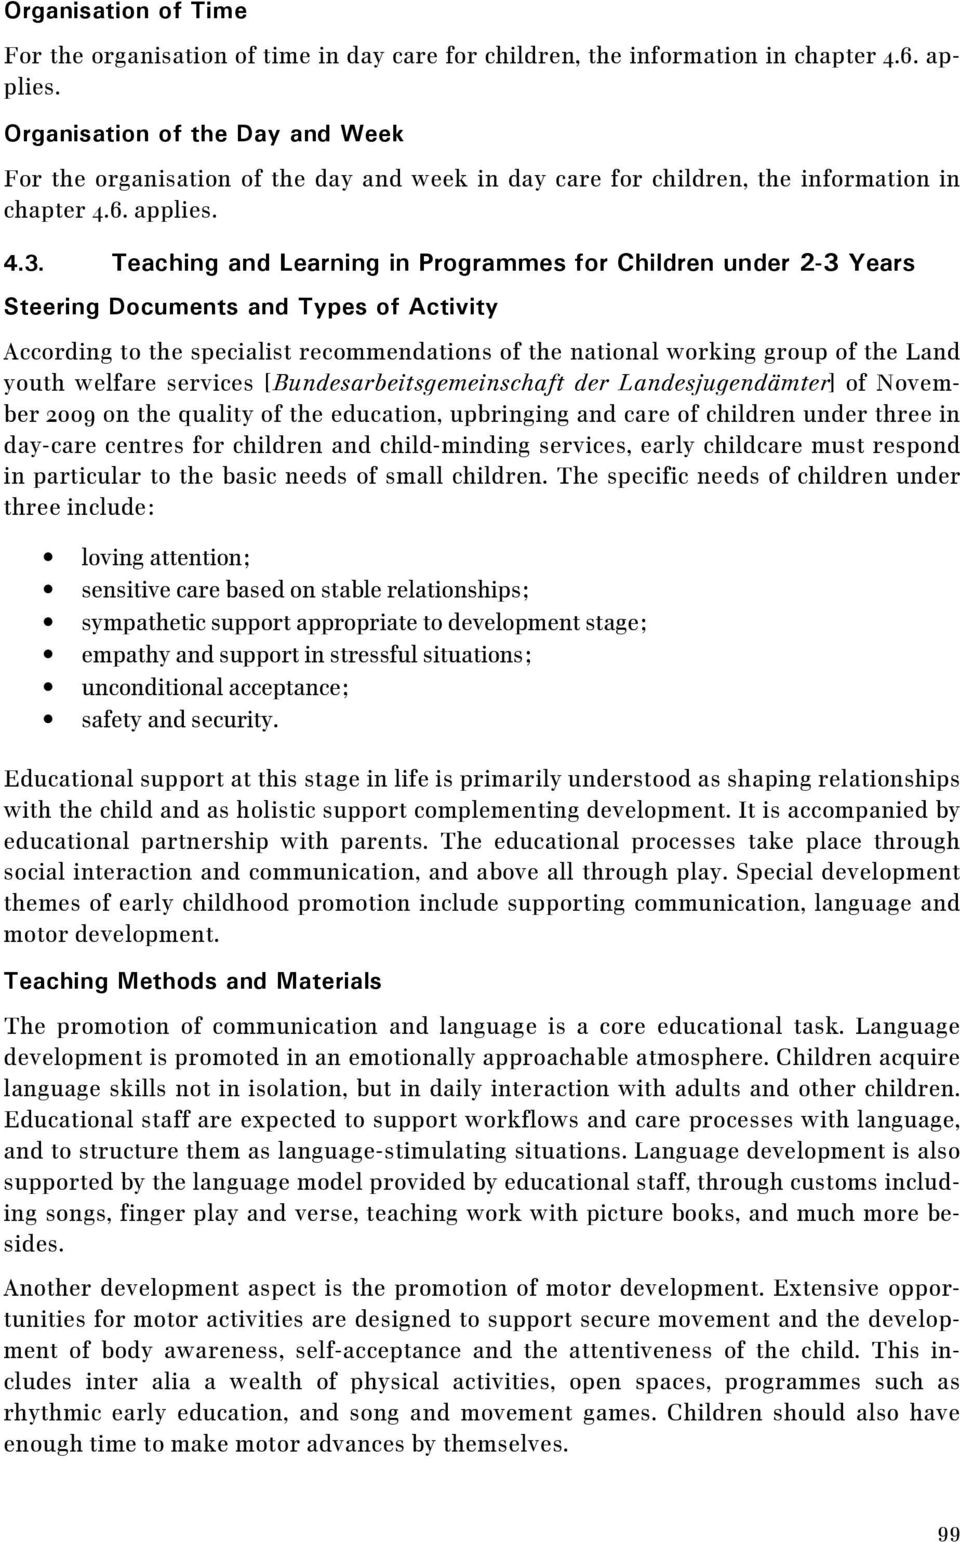 Teaching and Learning in Programmes for Children under 2-3 Years Steering Documents and Types of Activity According to the specialist recommendations of the national working group of the Land youth